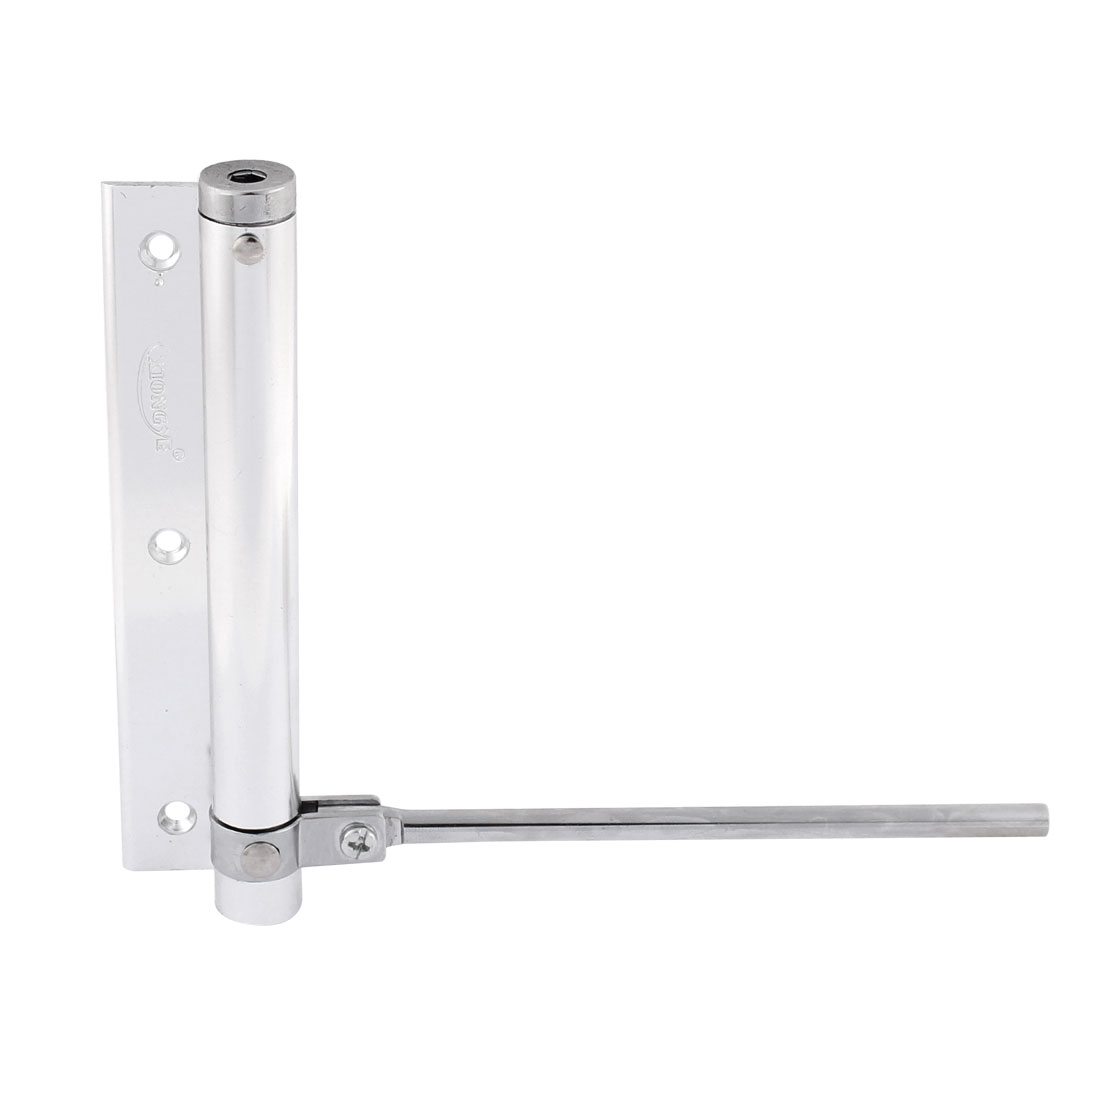 60mm x 60mm Automatic Metal Door Closers Hardware Silver Tone 155mm Long